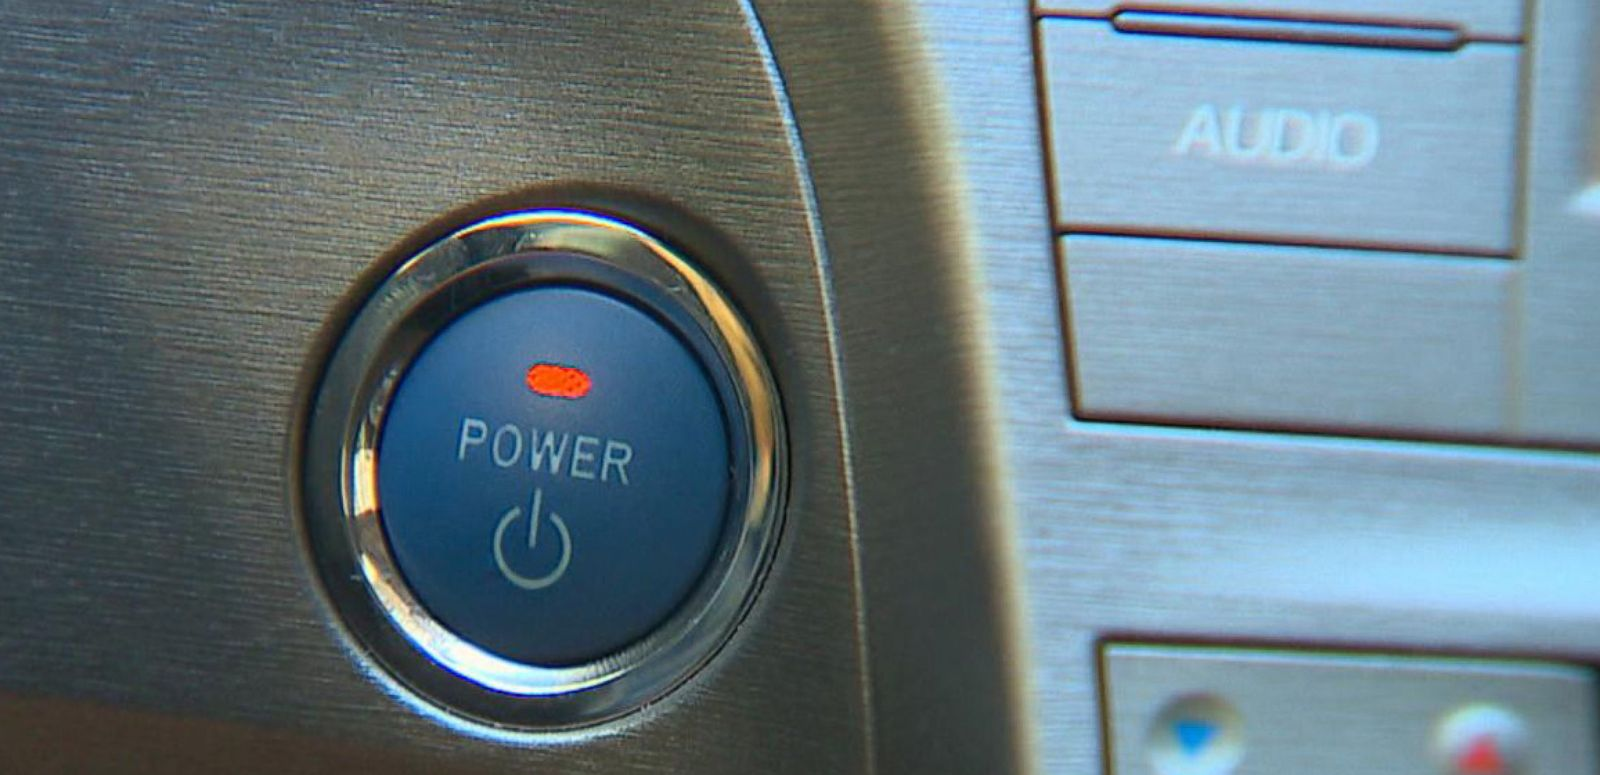 VIDEO: New Lawsuit Alleges Keyless Ignitions Can Be Deadly